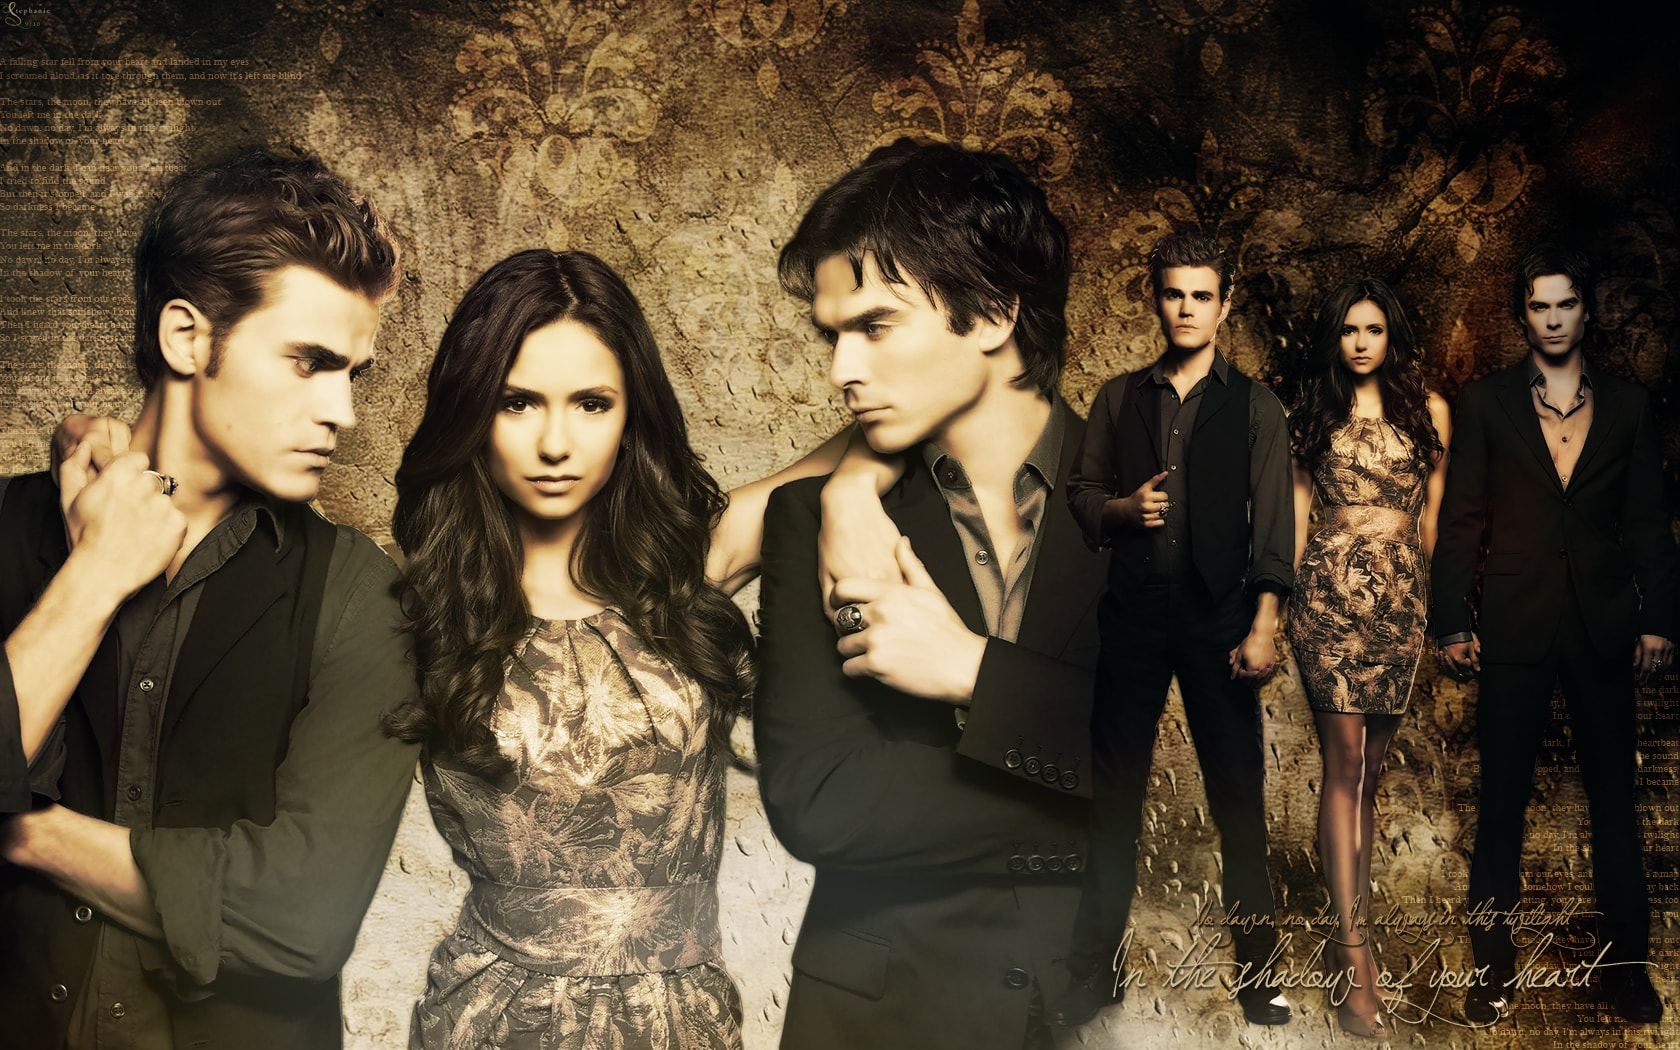 The Vampire Diaries Background